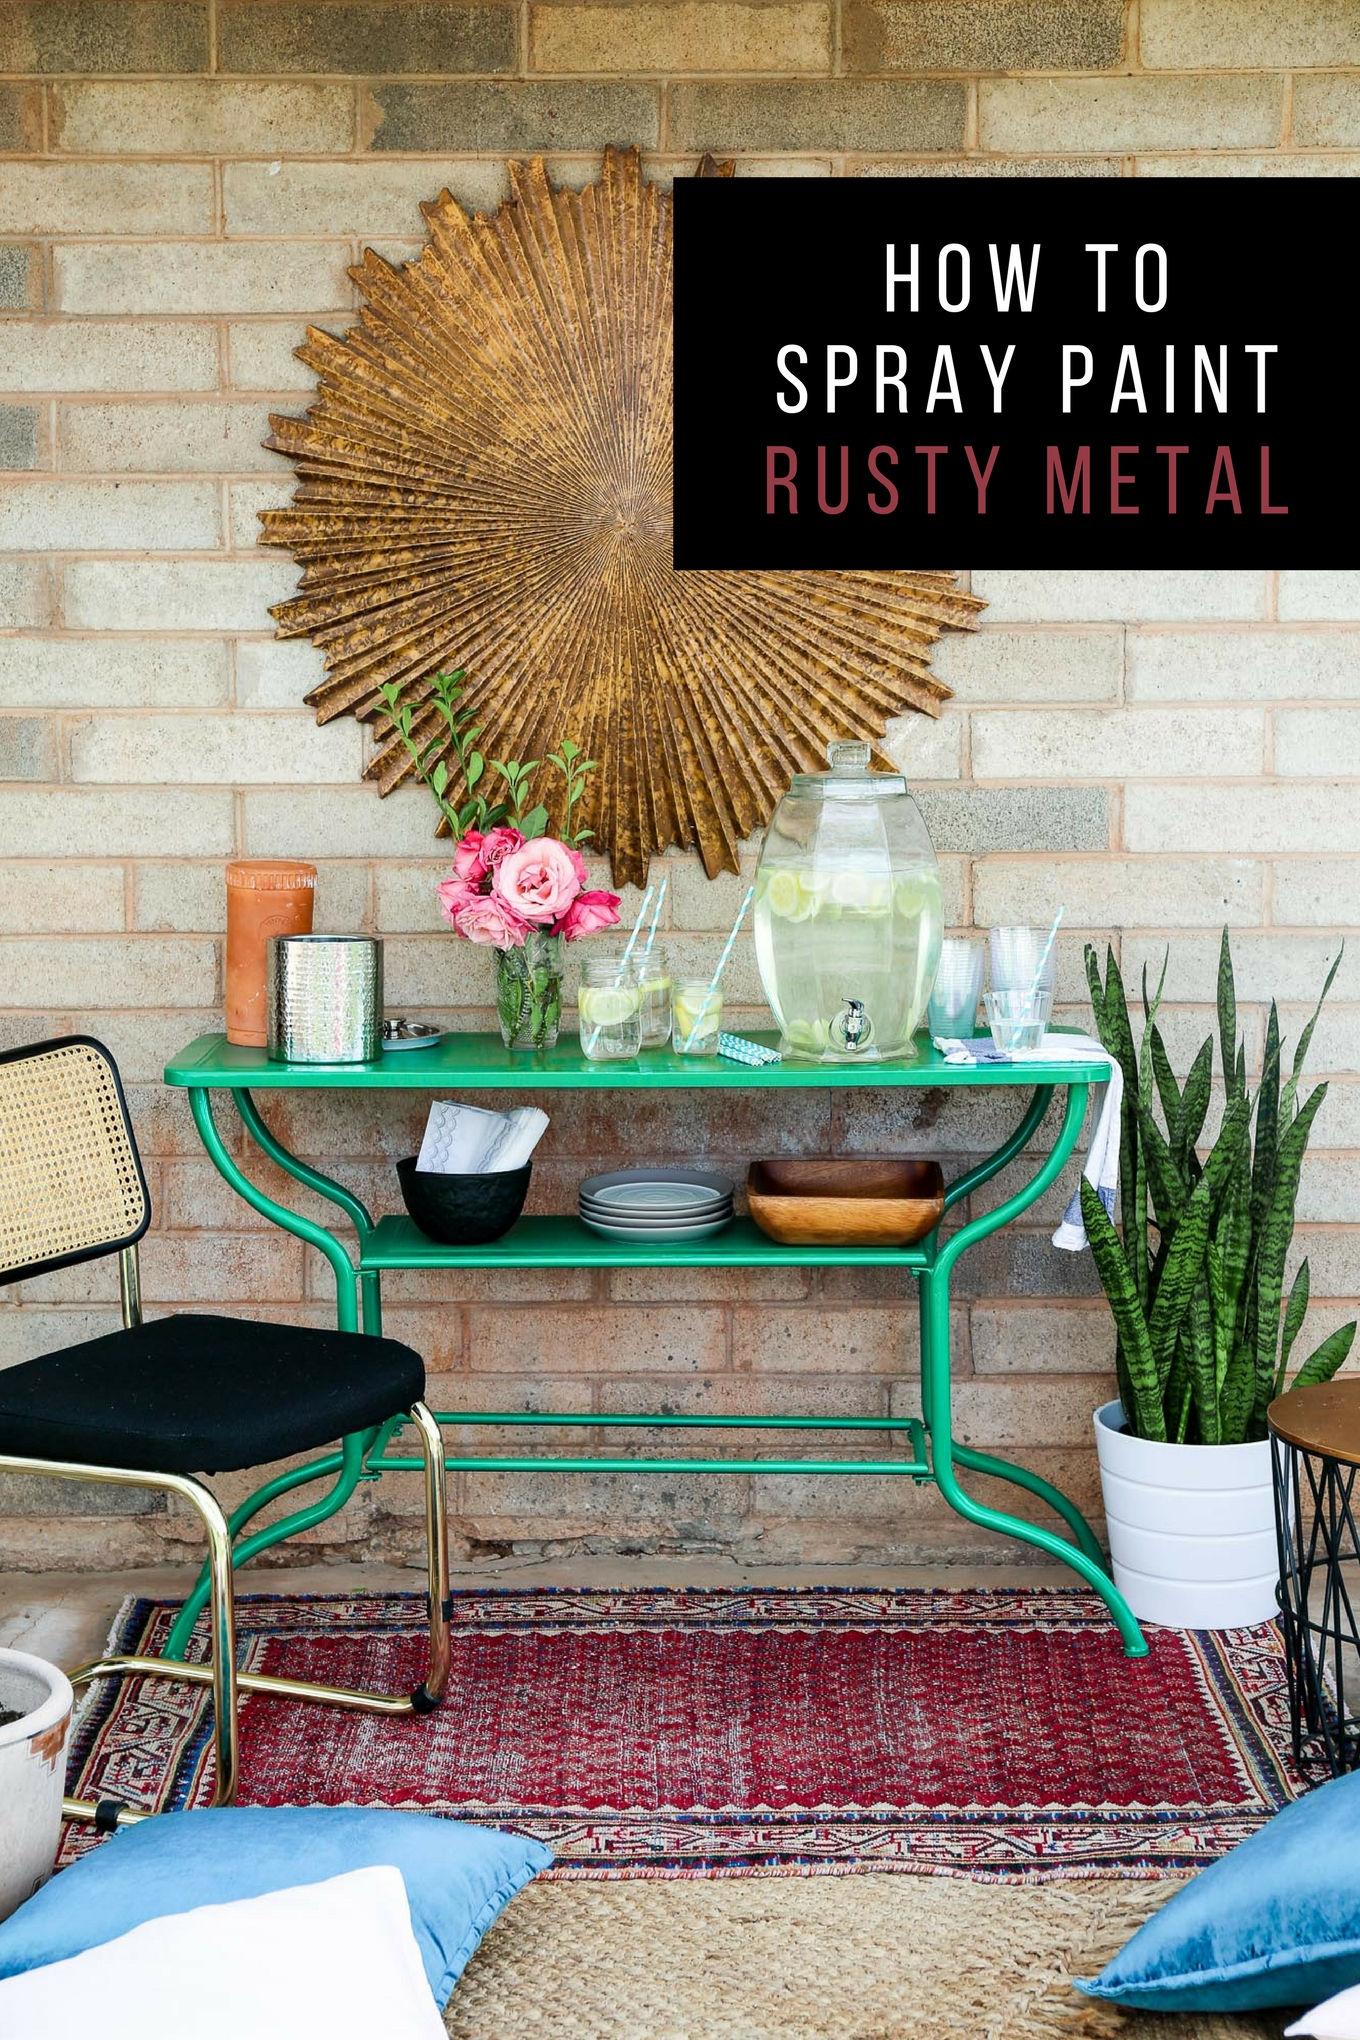 How to spray paint rusty metal.  Take something rusty and turn it into a usable pretty piece once more. These tips will make for a successful project!